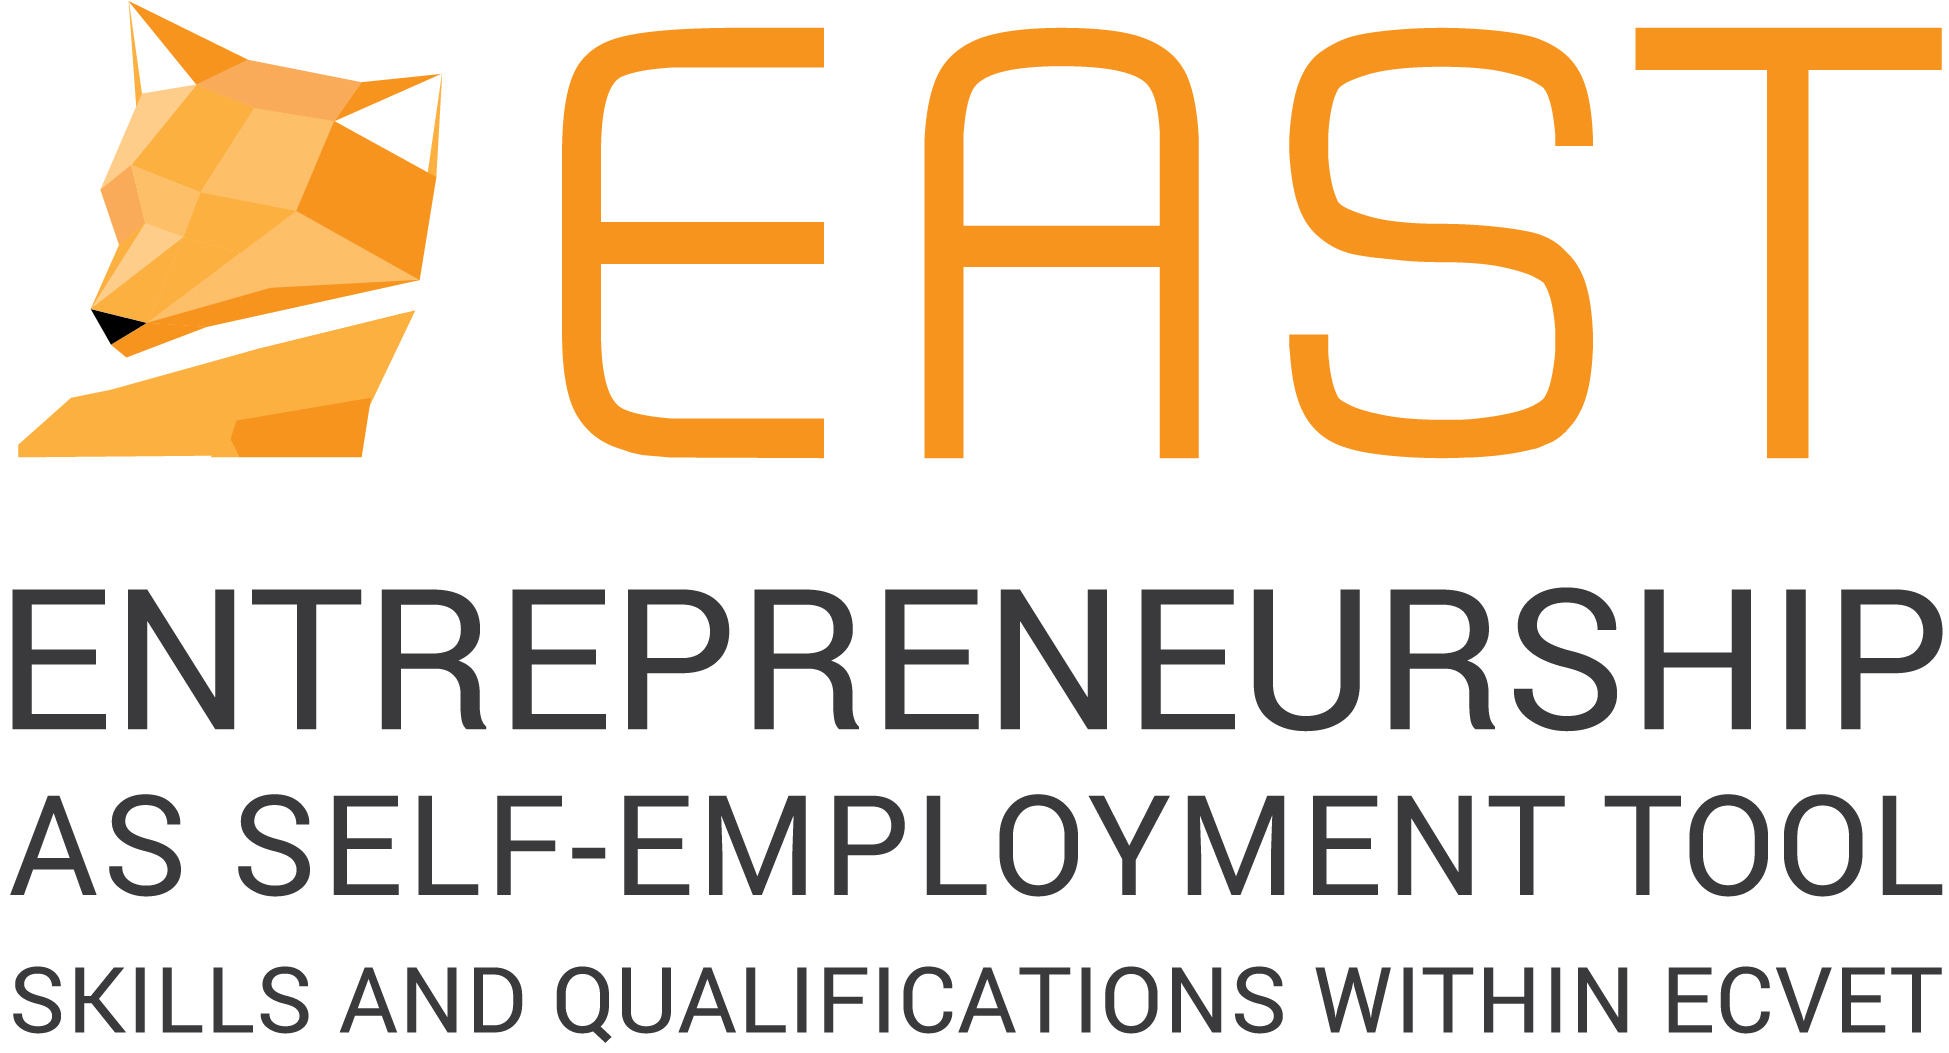 EAST - Entrepreneurship as Self-employment tool. Skills and qualifications within ECVET.